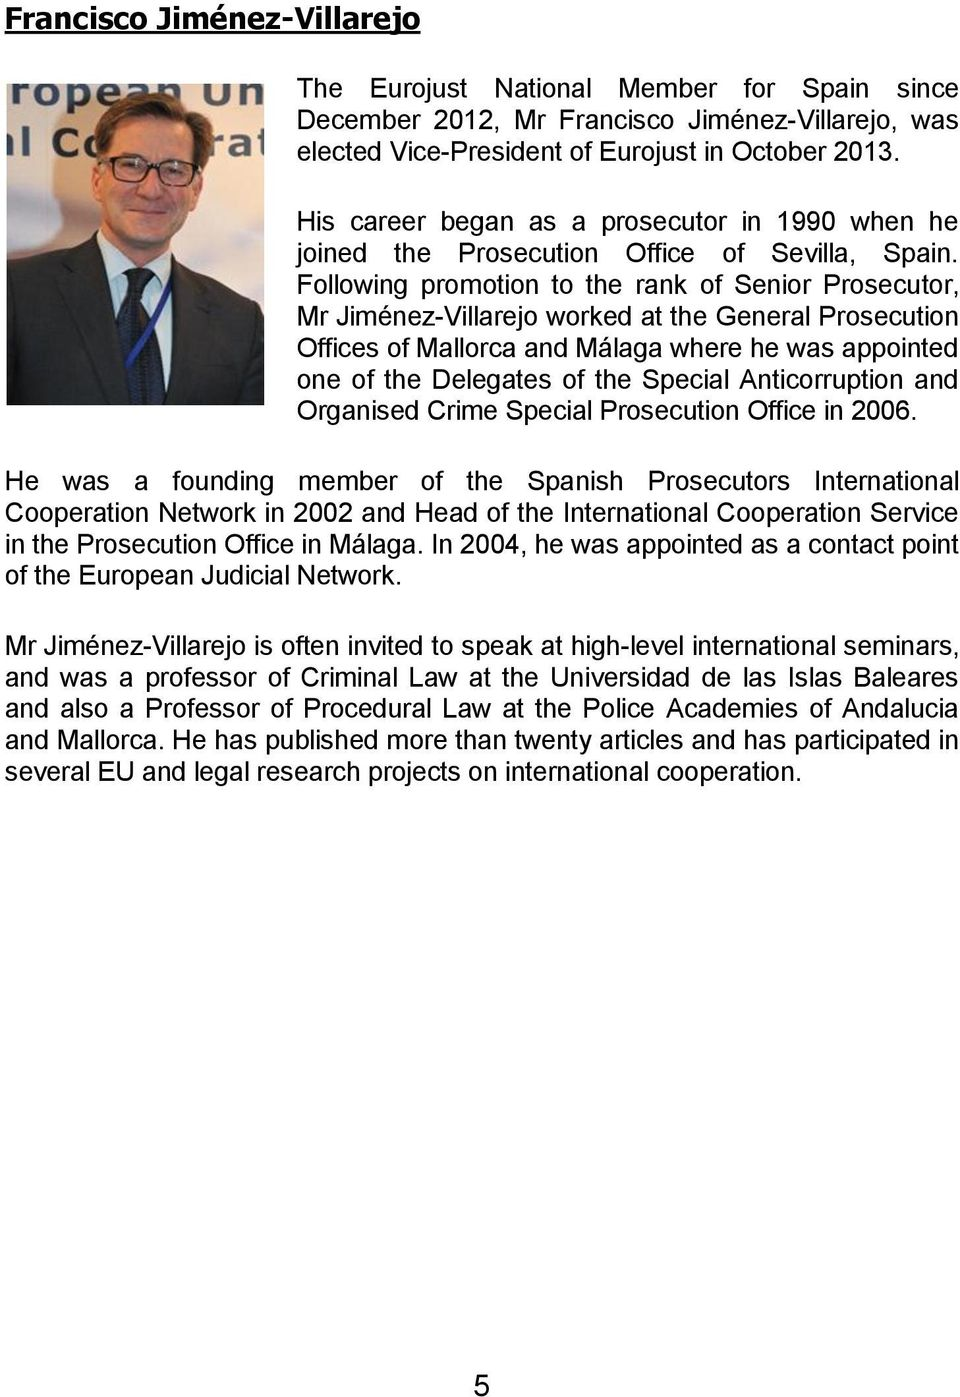 Following promotion to the rank of Senior Prosecutor, Mr Jiménez-Villarejo worked at the General Prosecution Offices of Mallorca and Málaga where he was appointed one of the Delegates of the Special